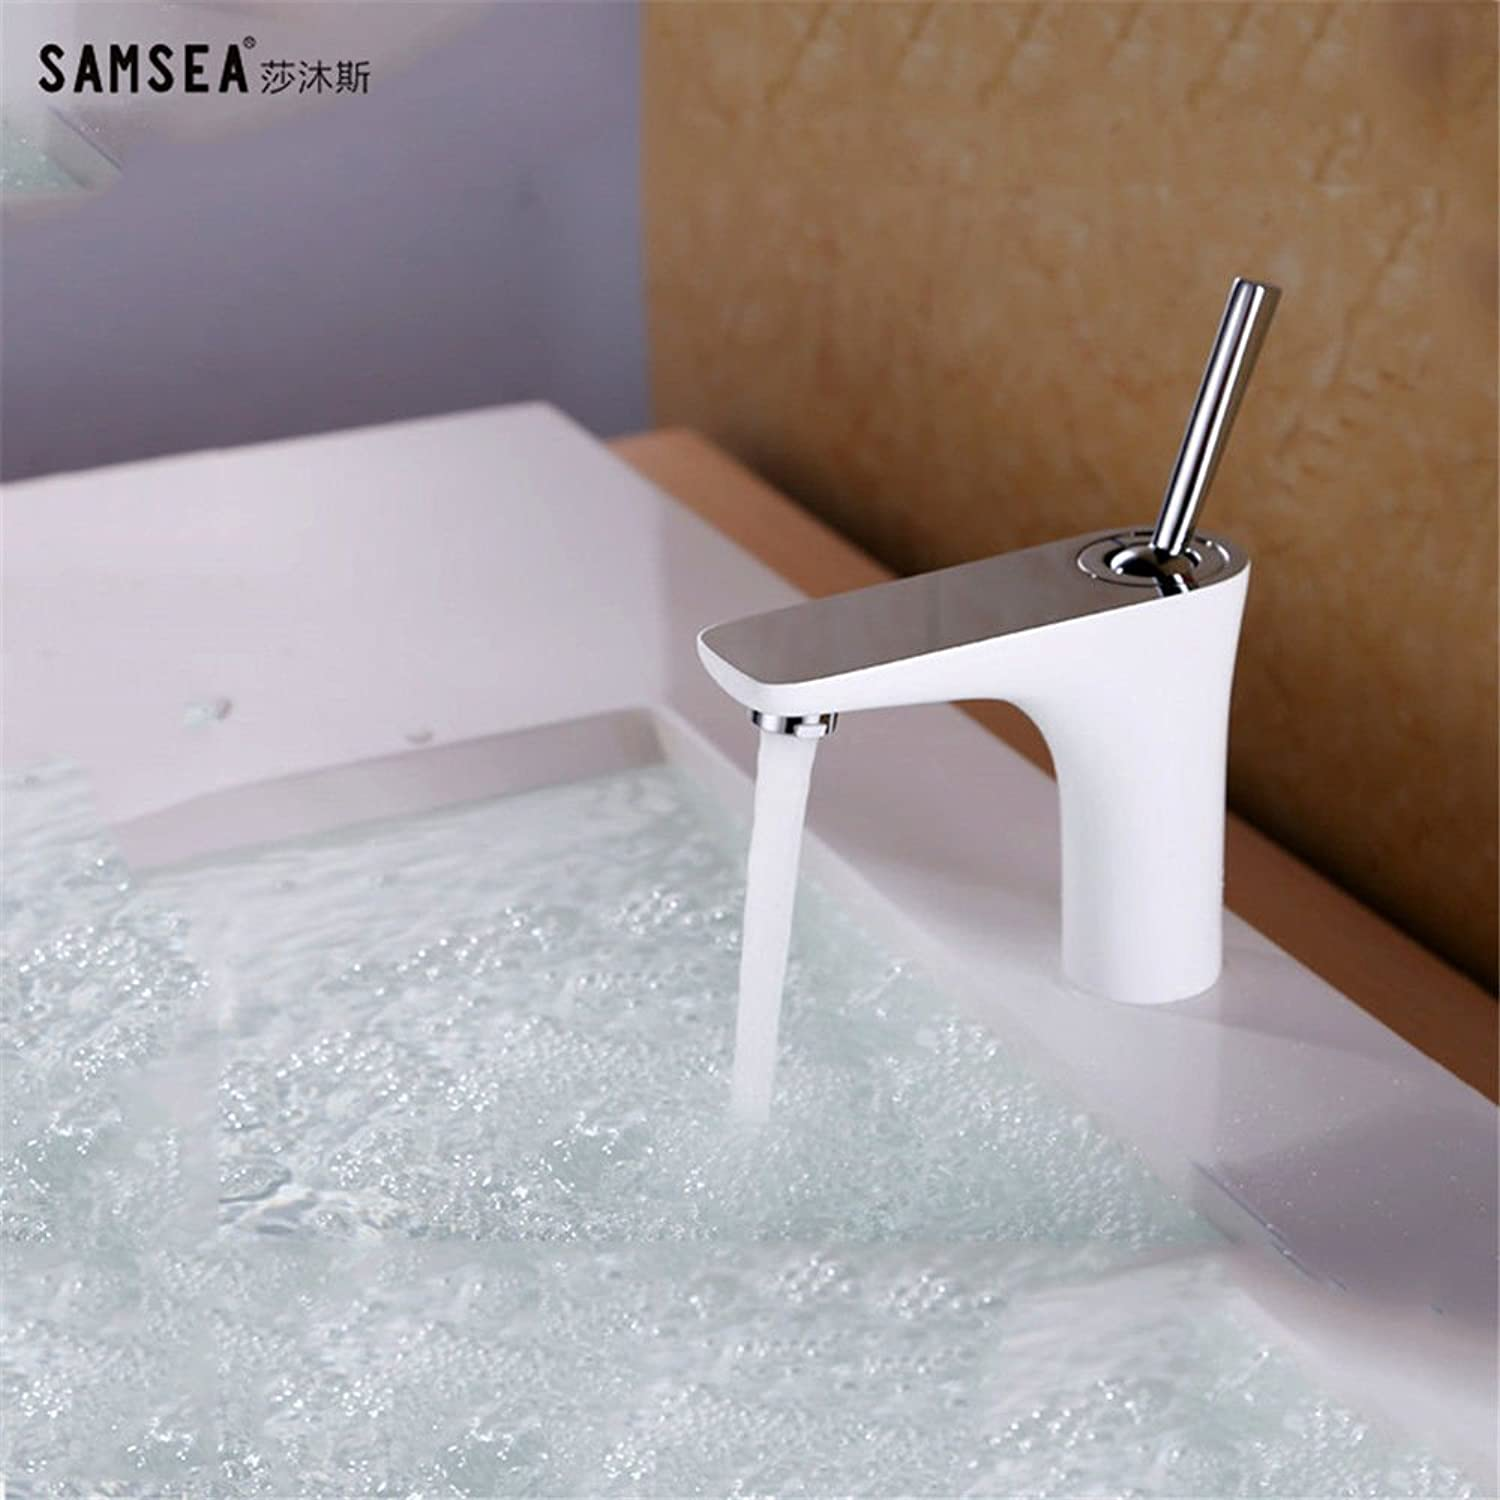 Fbict White Paint Basin Faucet Bathroom Bathroom Above Counter Basin Sink Copper hot and Cold for Kitchen Bathroom Faucet Bid Tap